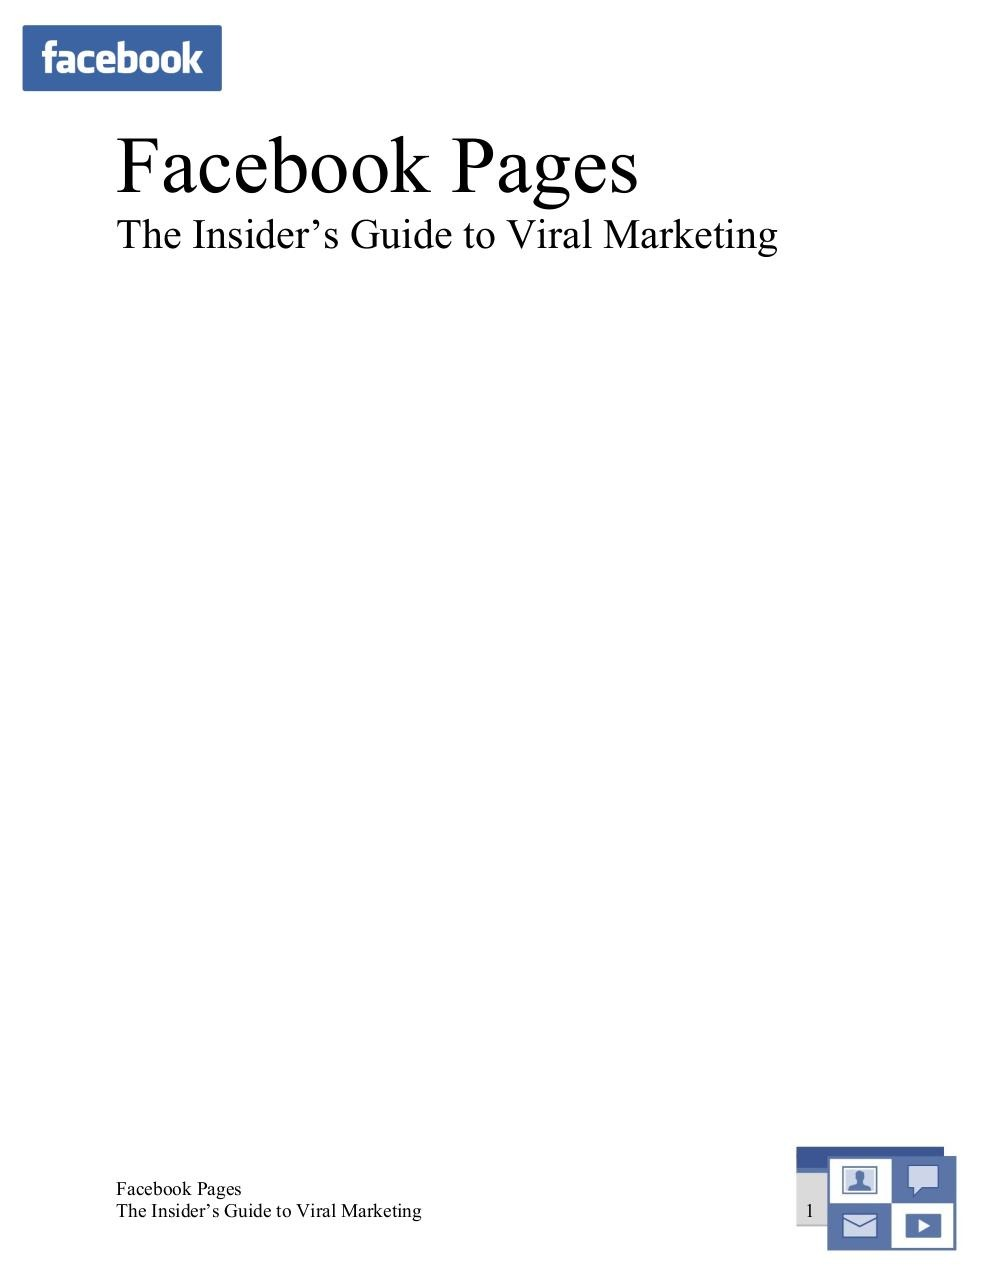 Aperçu du fichier PDF facebook-pages-the-insiderguide-to-viral-marketing.pdf - page 1/28